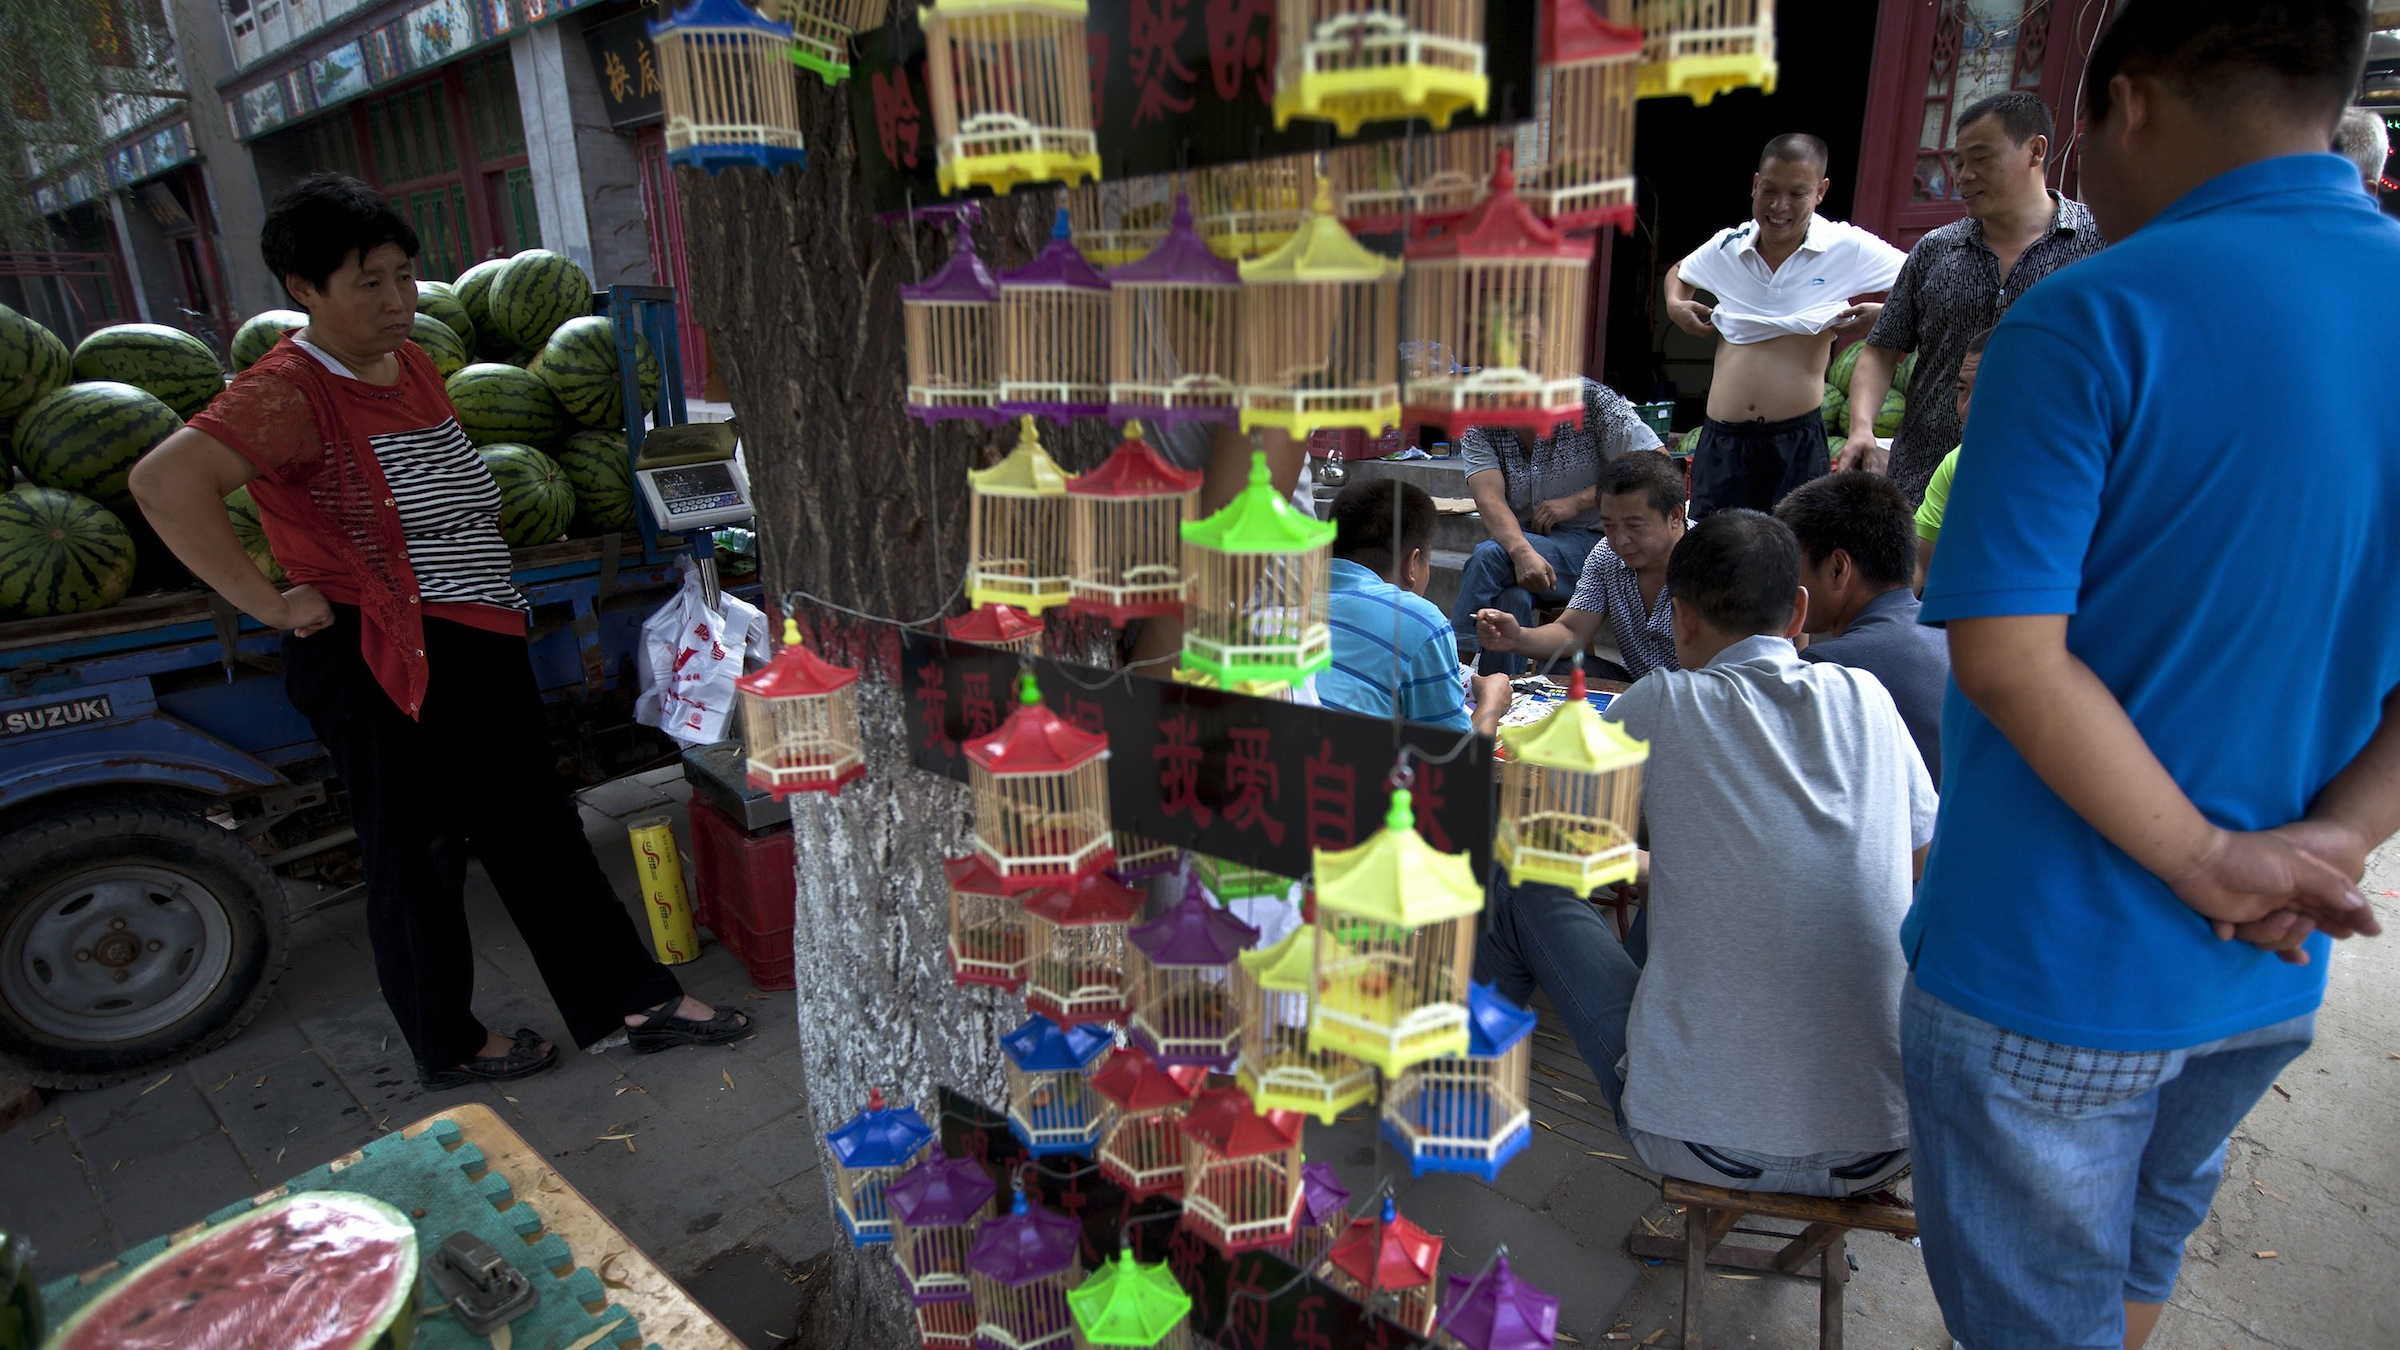 Chinese people play card games near a roadside store selling fruits and grasshopper in Zhengding county, North China's Hebei province Thursday, Aug. 30, 2012. (AP Photo/Andy Wong)